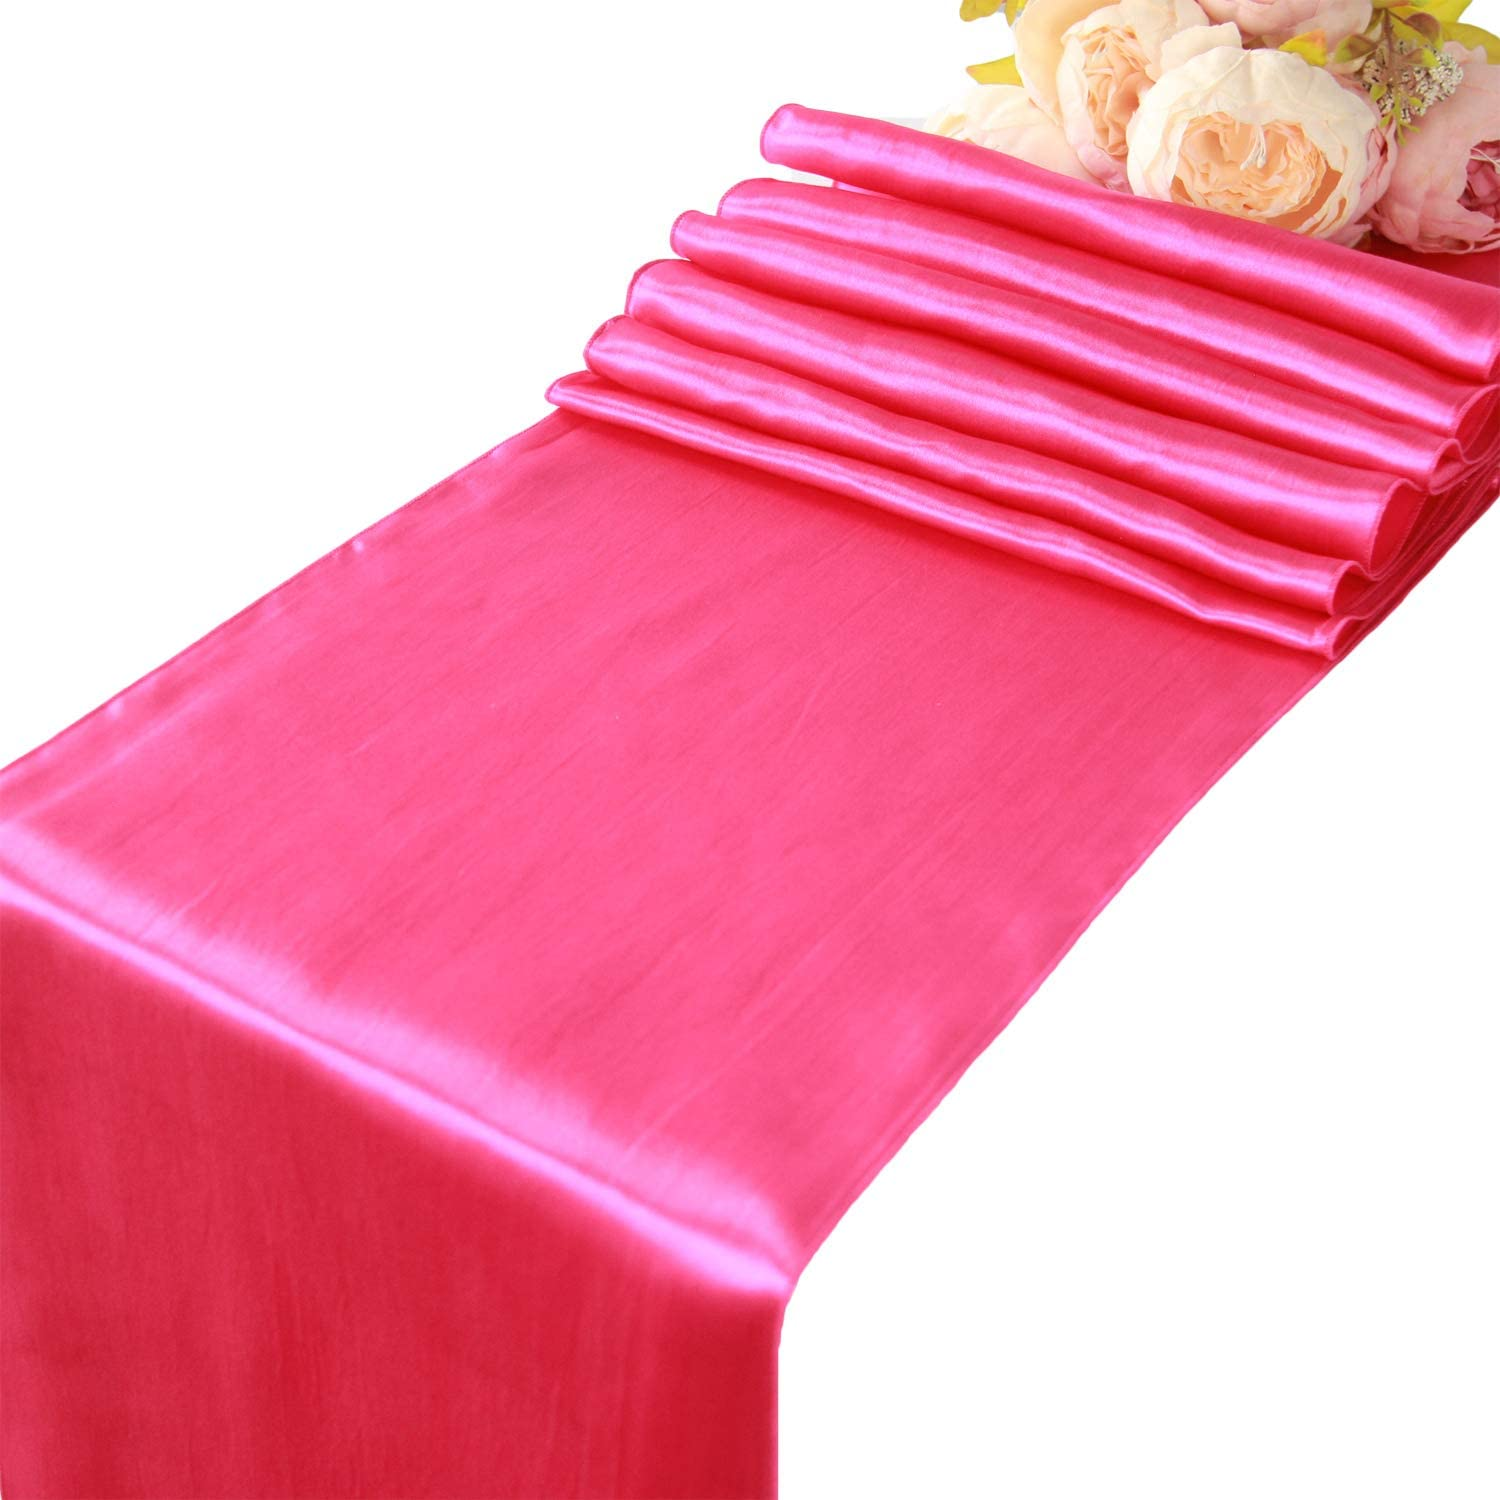 55% OFF WELMATCH Hot Pink Satin Table Runners pcs - Great interest Wedding Banquet 5 Pa